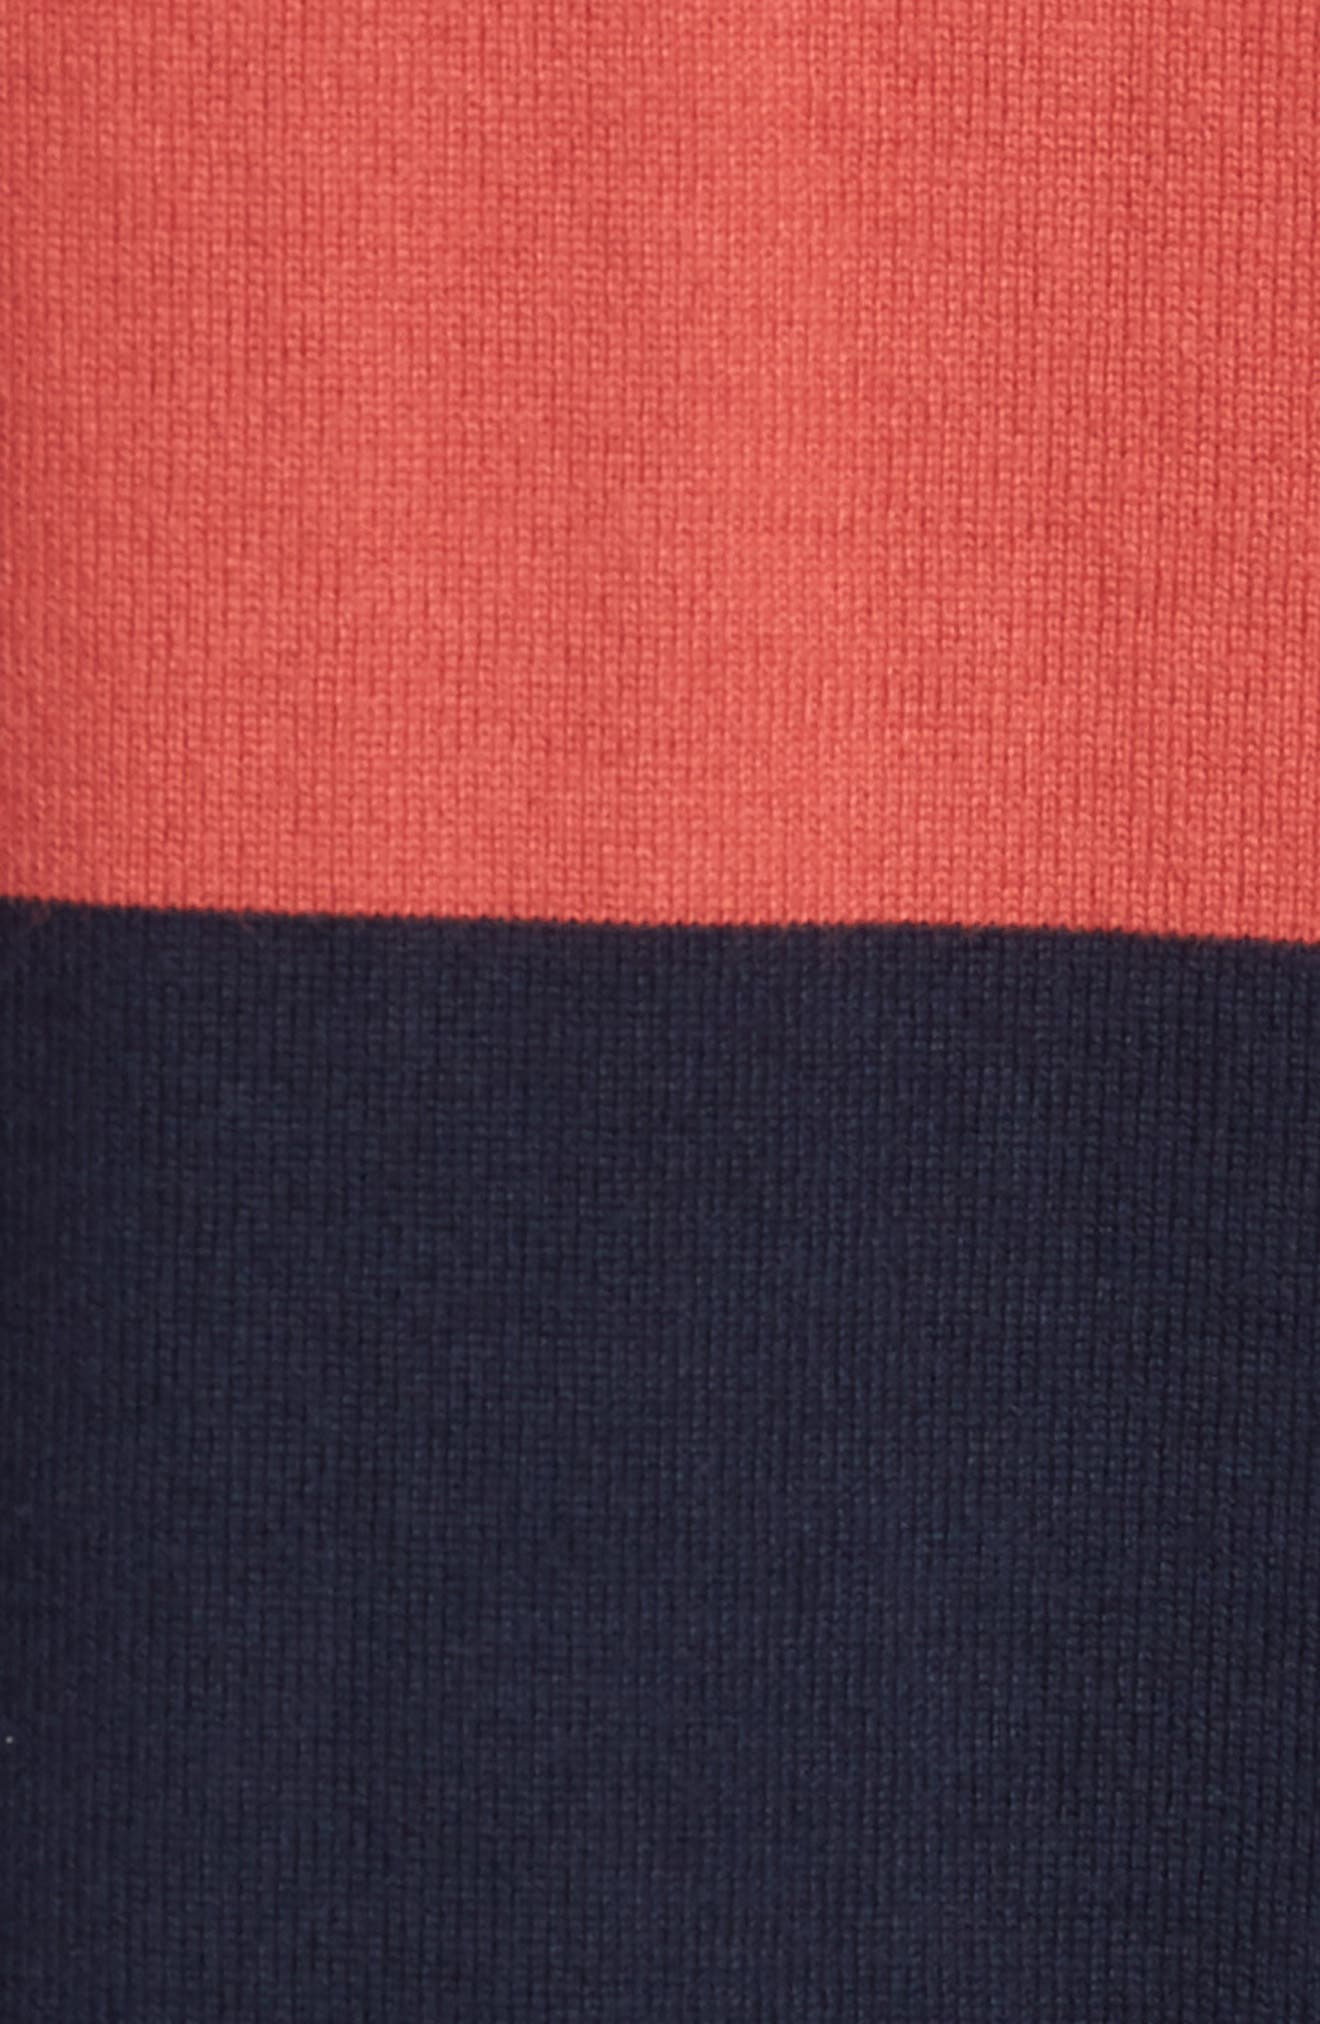 1984 Stripe Rugby Shirt,                             Alternate thumbnail 5, color,                             600